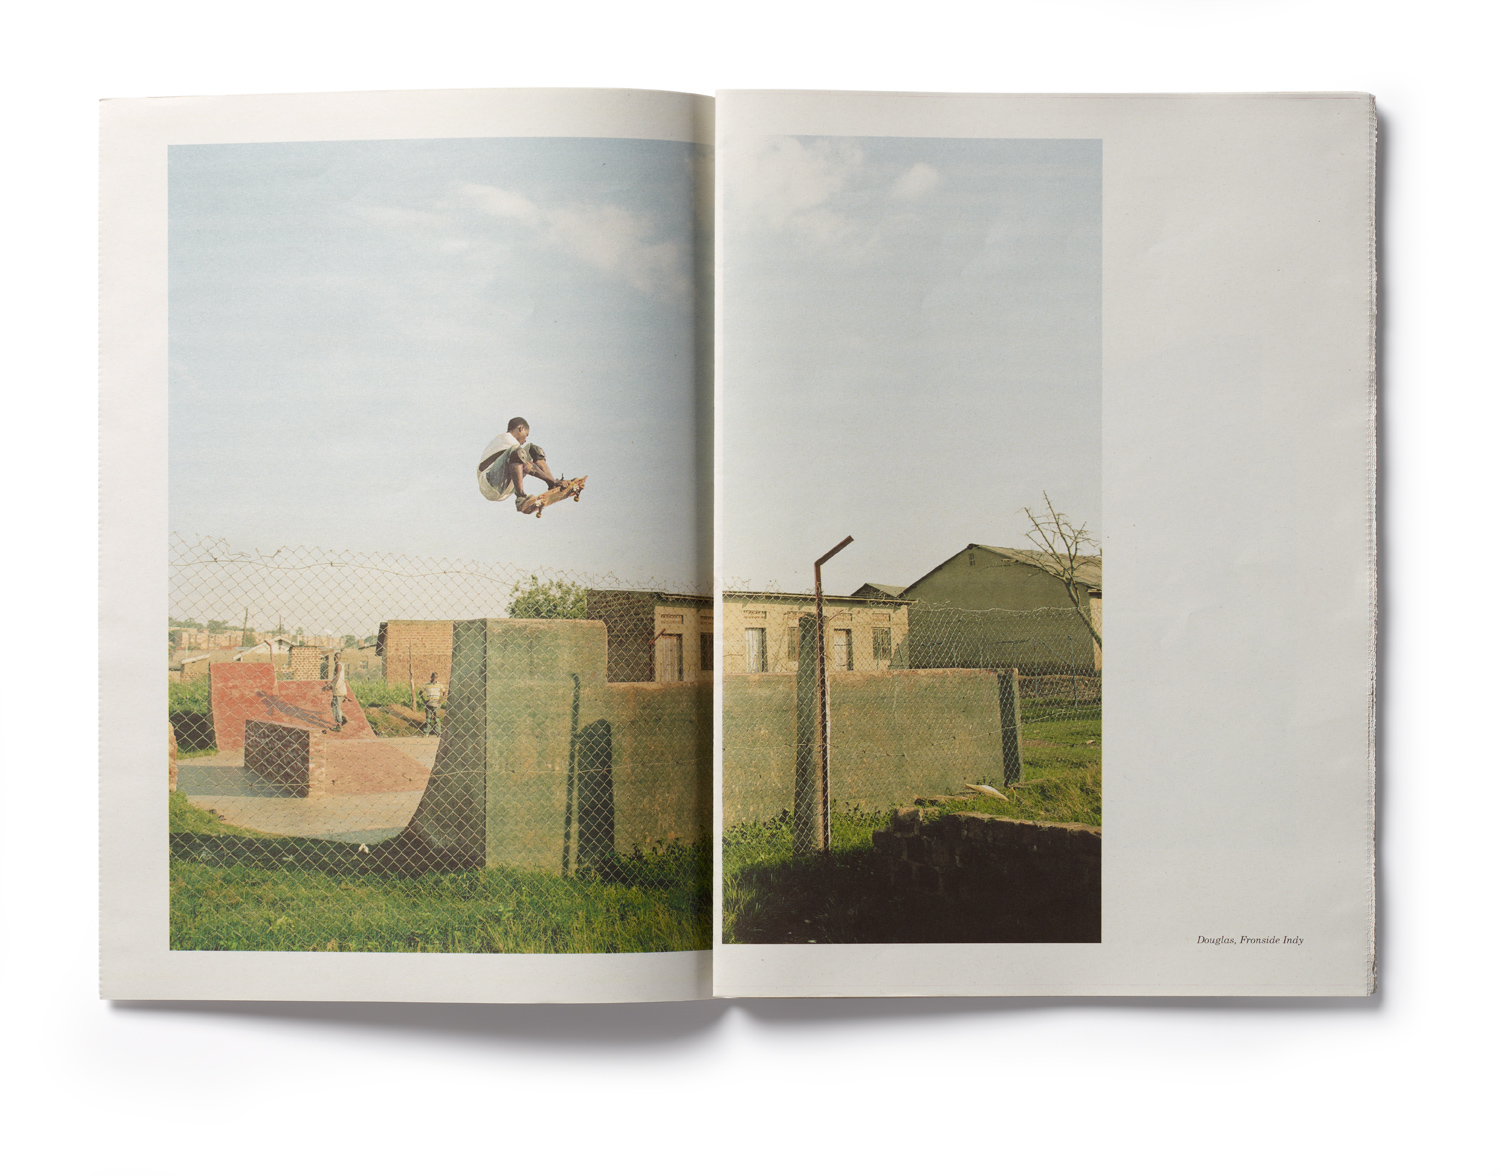 An inside spread from Yann Gross's book Kitintale, which was the second runner-up in the documentary category.